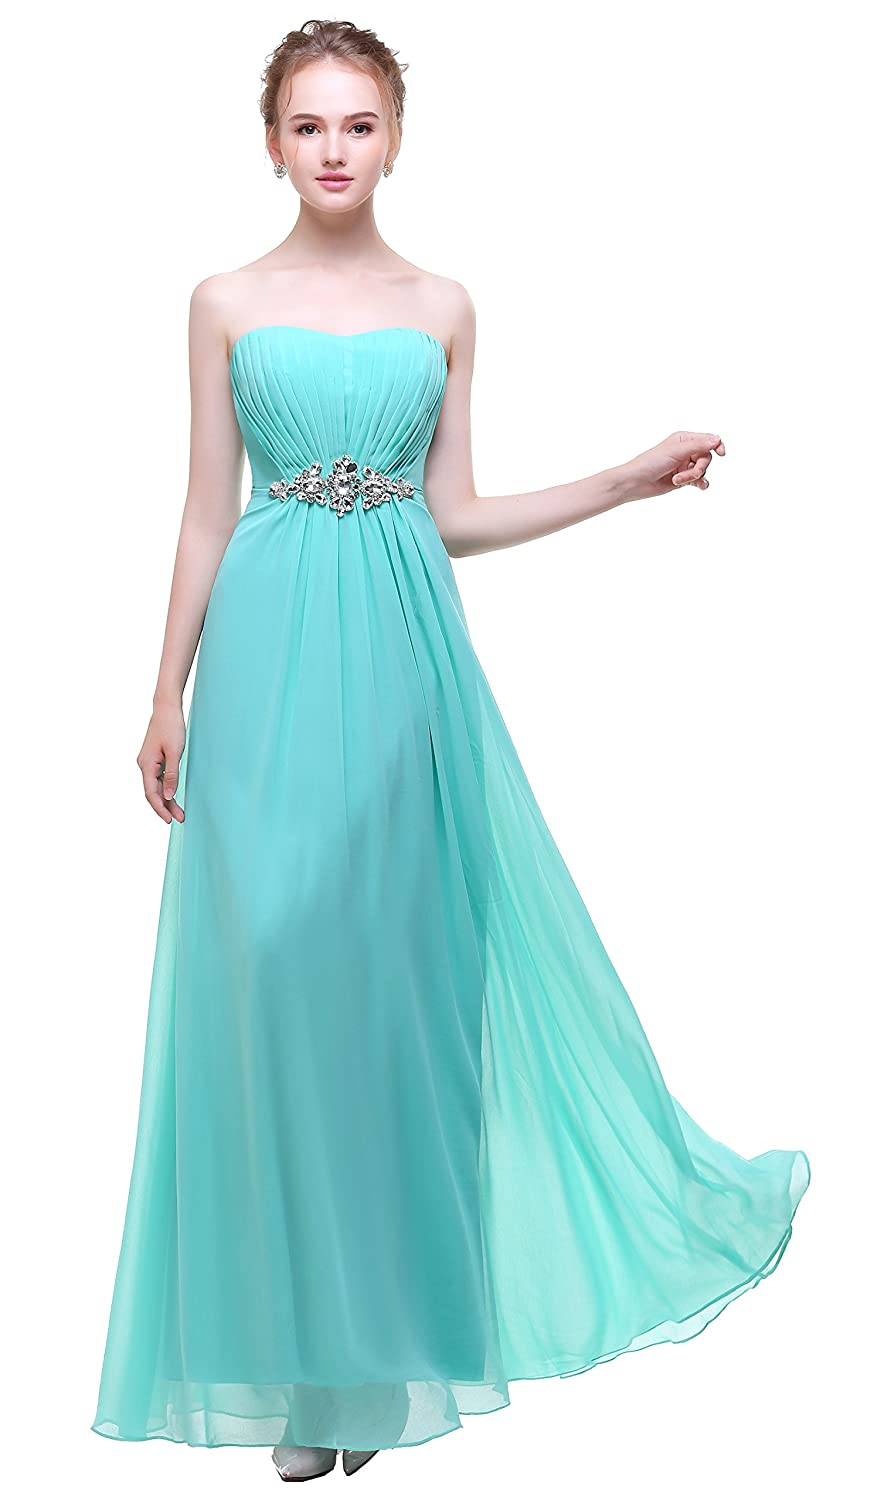 Esovr Strapless Chiffon Long Evening Gowns Bridesmaid Prom Dresses Mint Green 4 at Amazon Womens Clothing store: